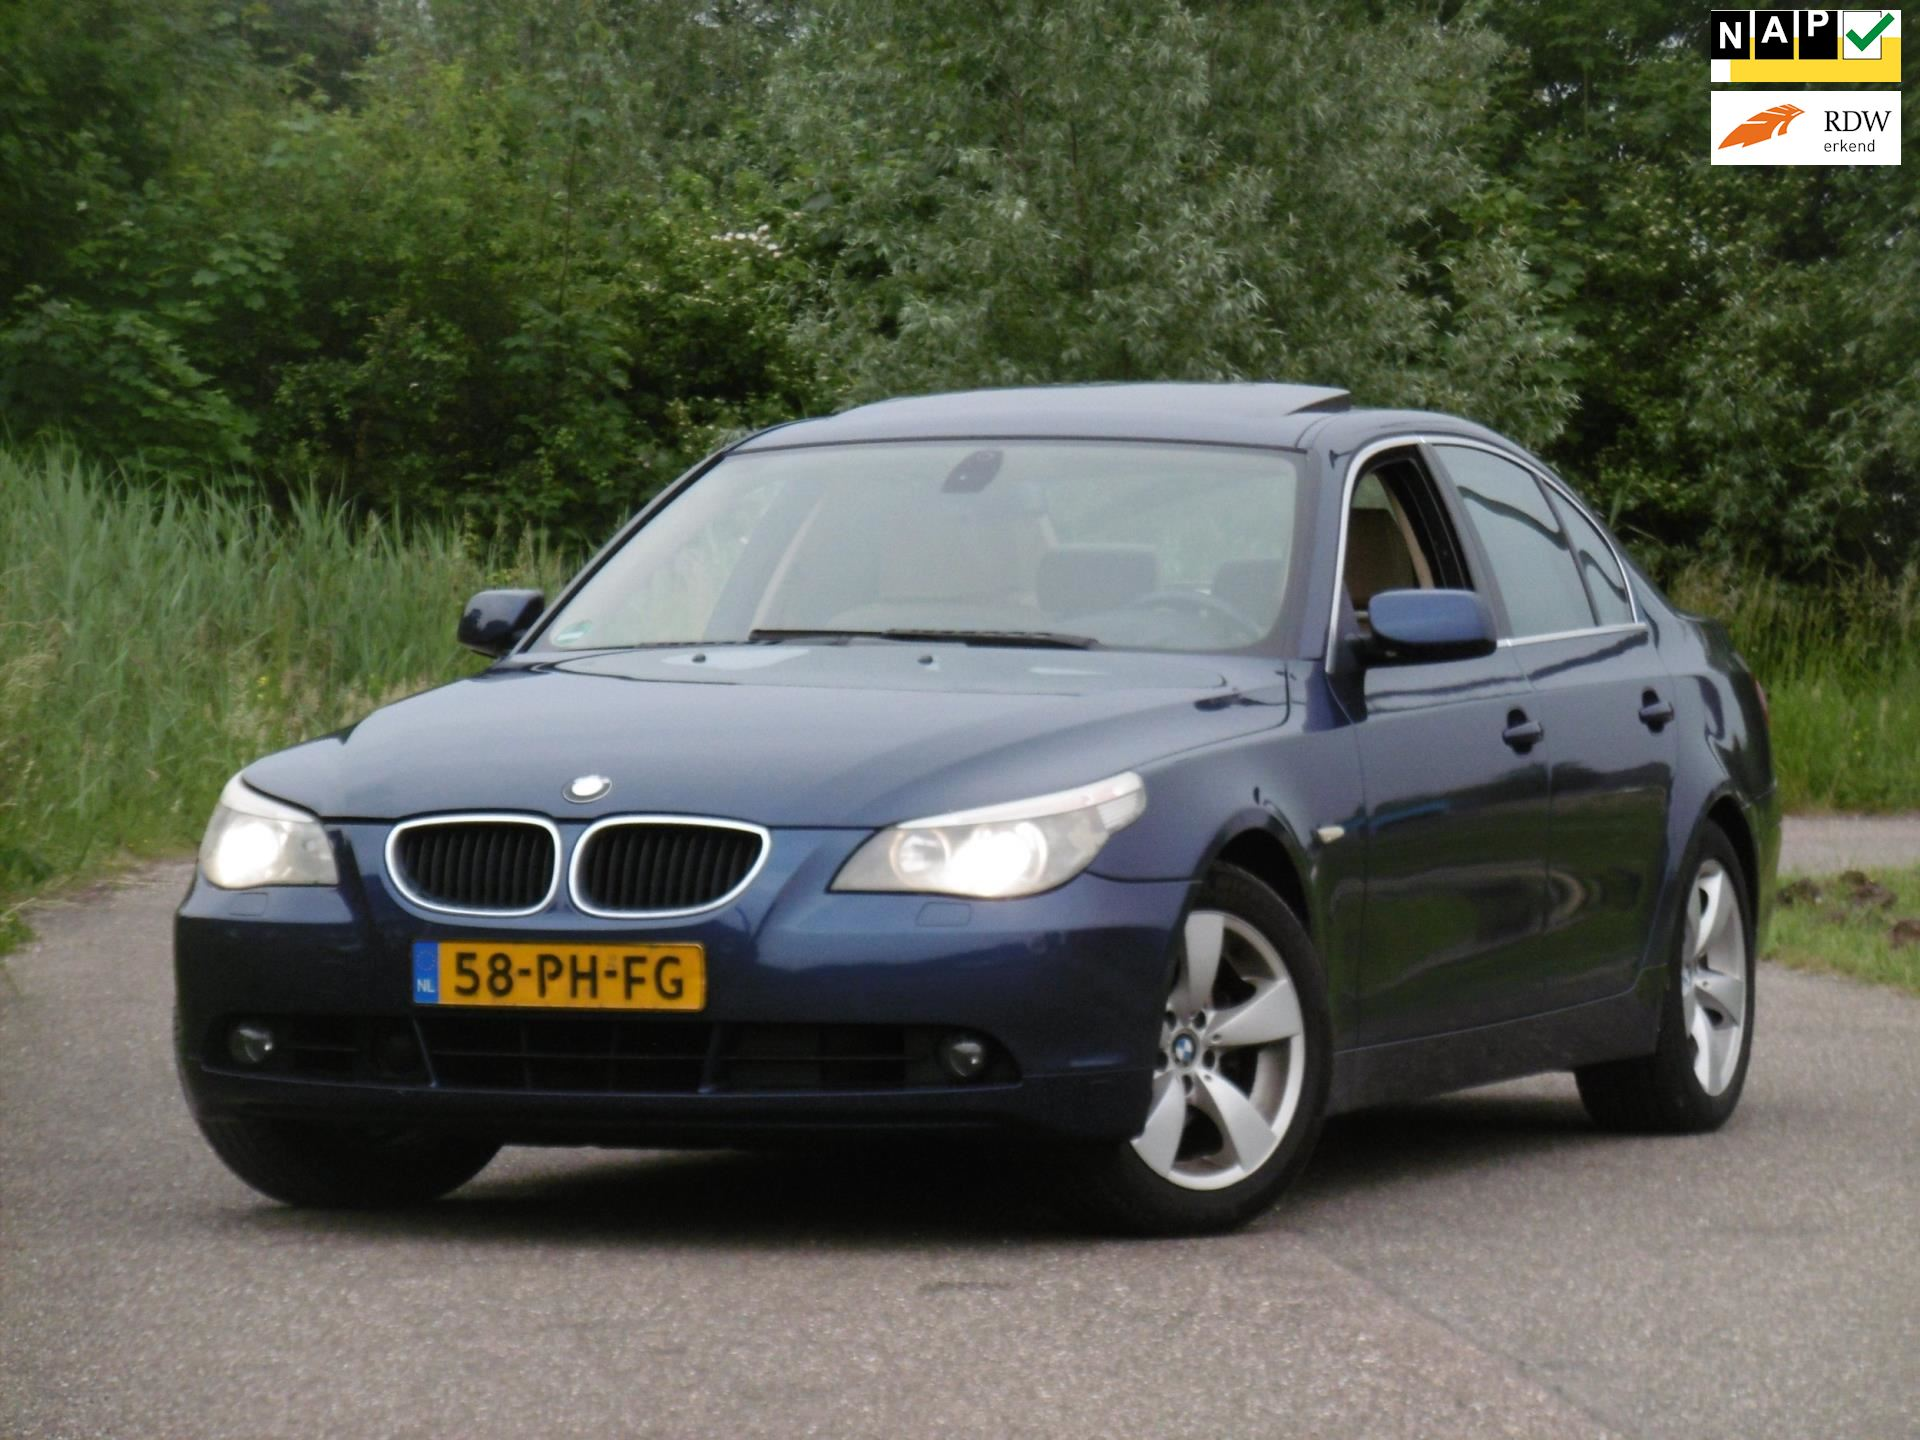 BMW 5-serie occasion - Dunant Cars